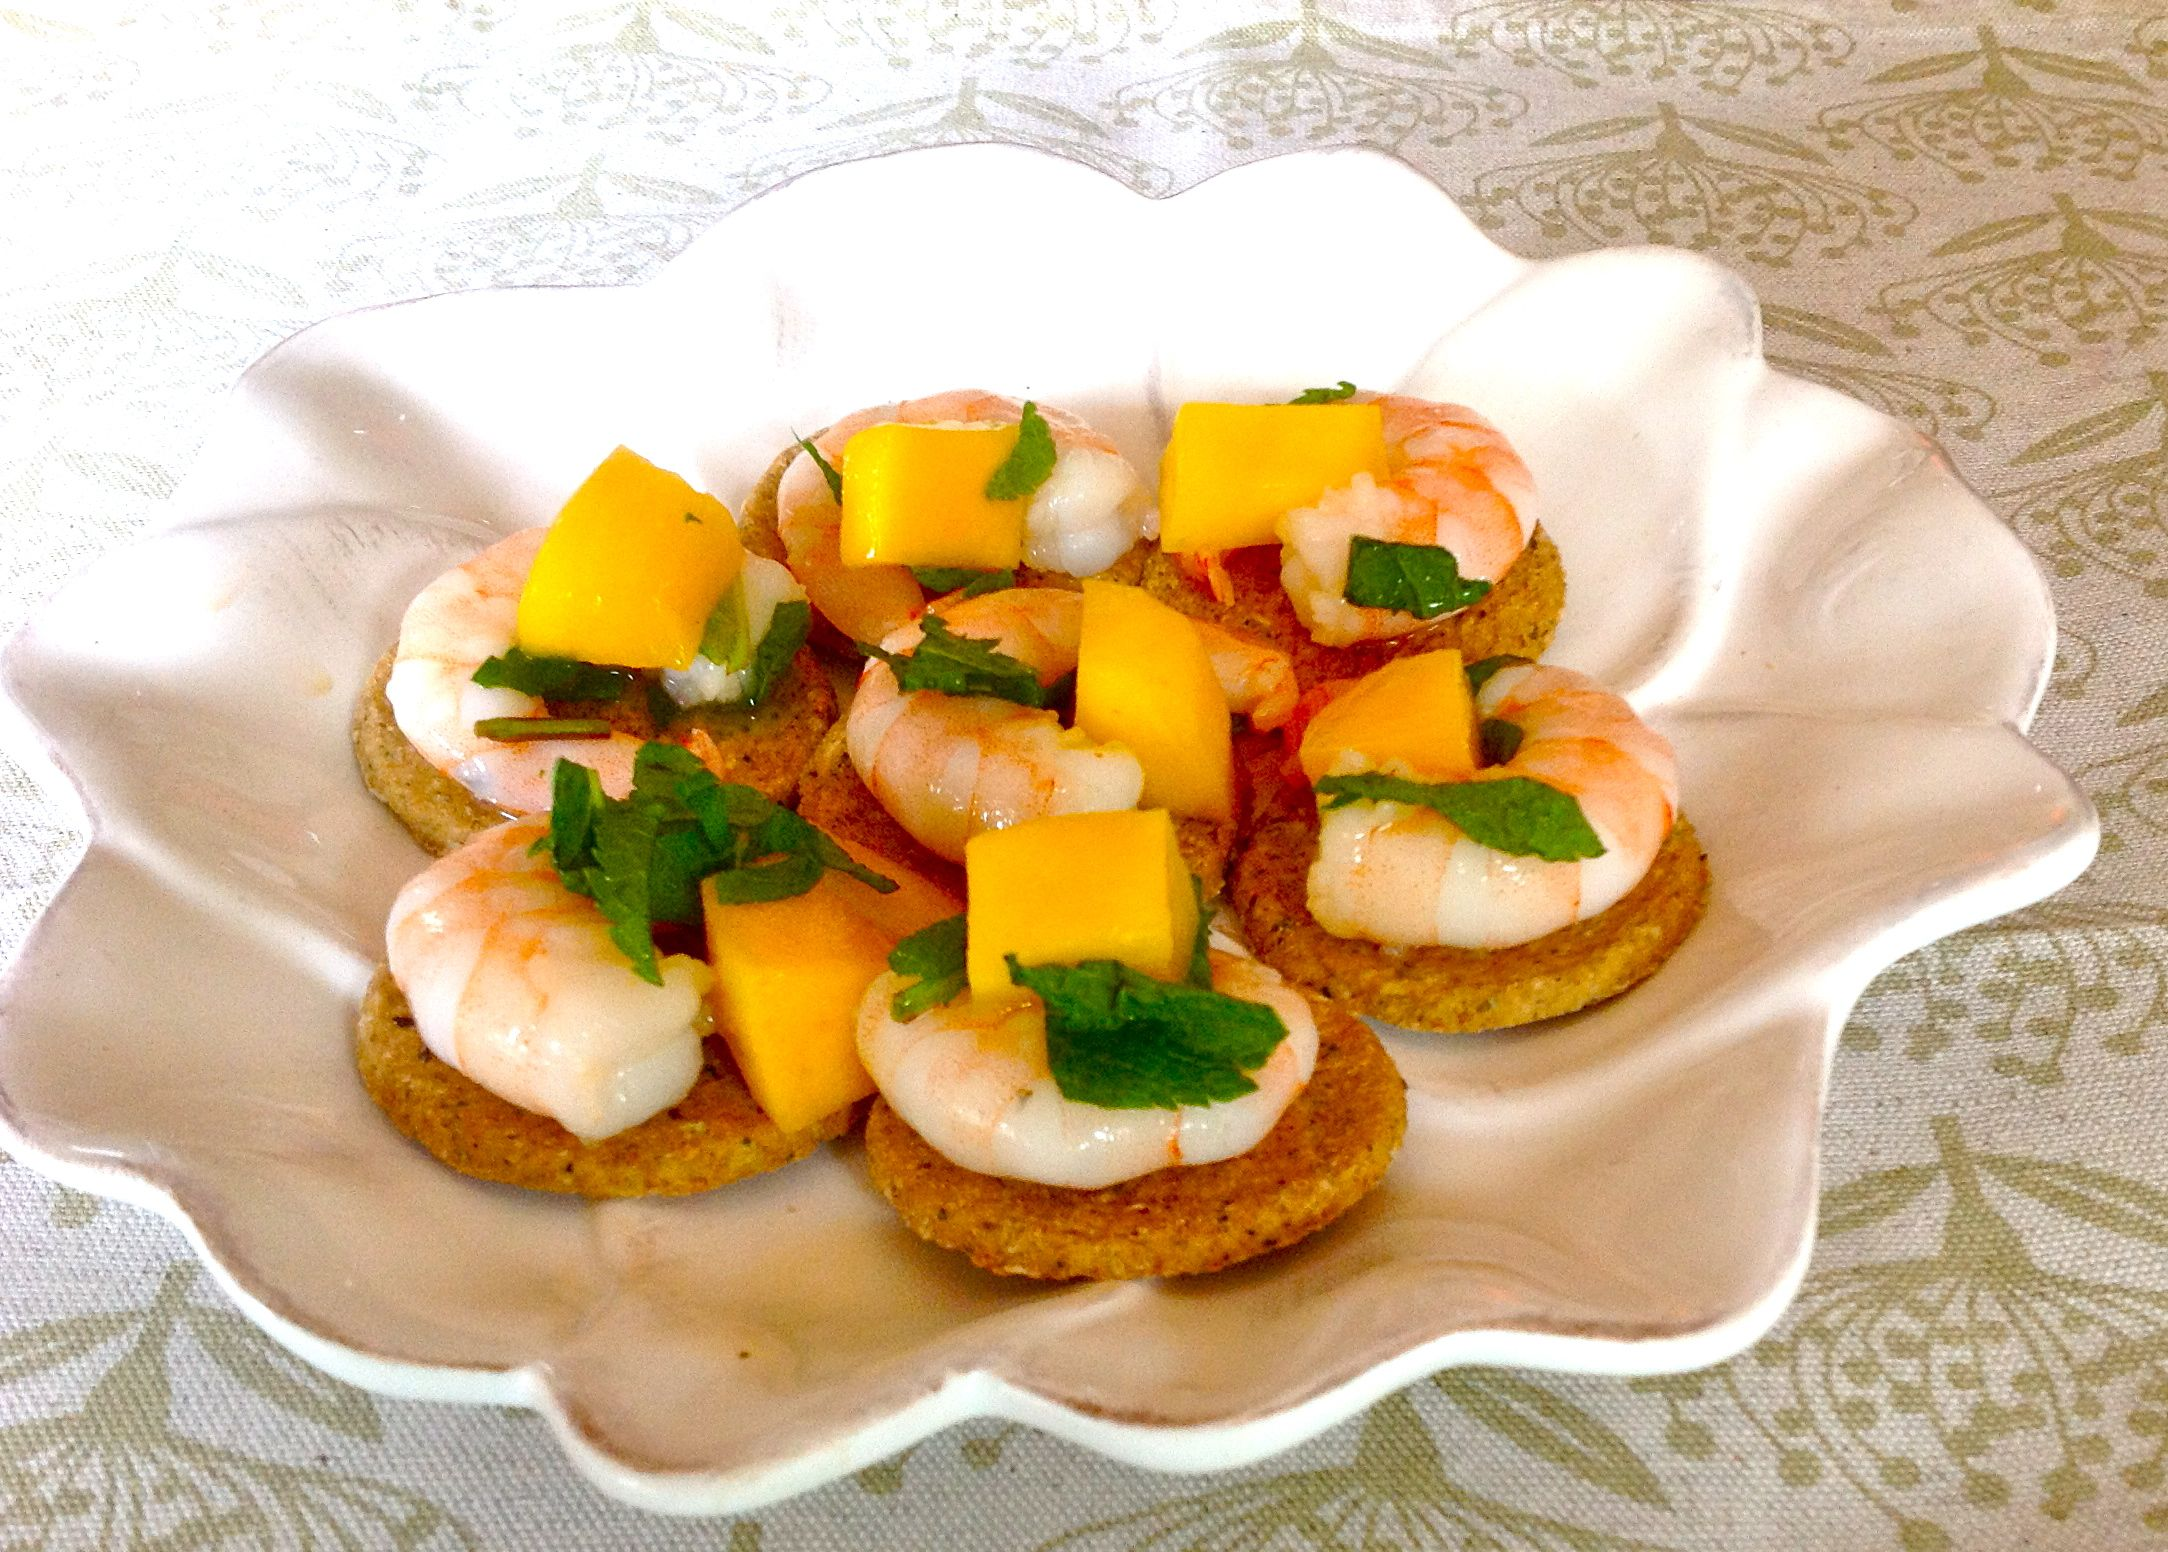 Recipes really easy ideas for canapes eating covent garden for Simple canape ideas